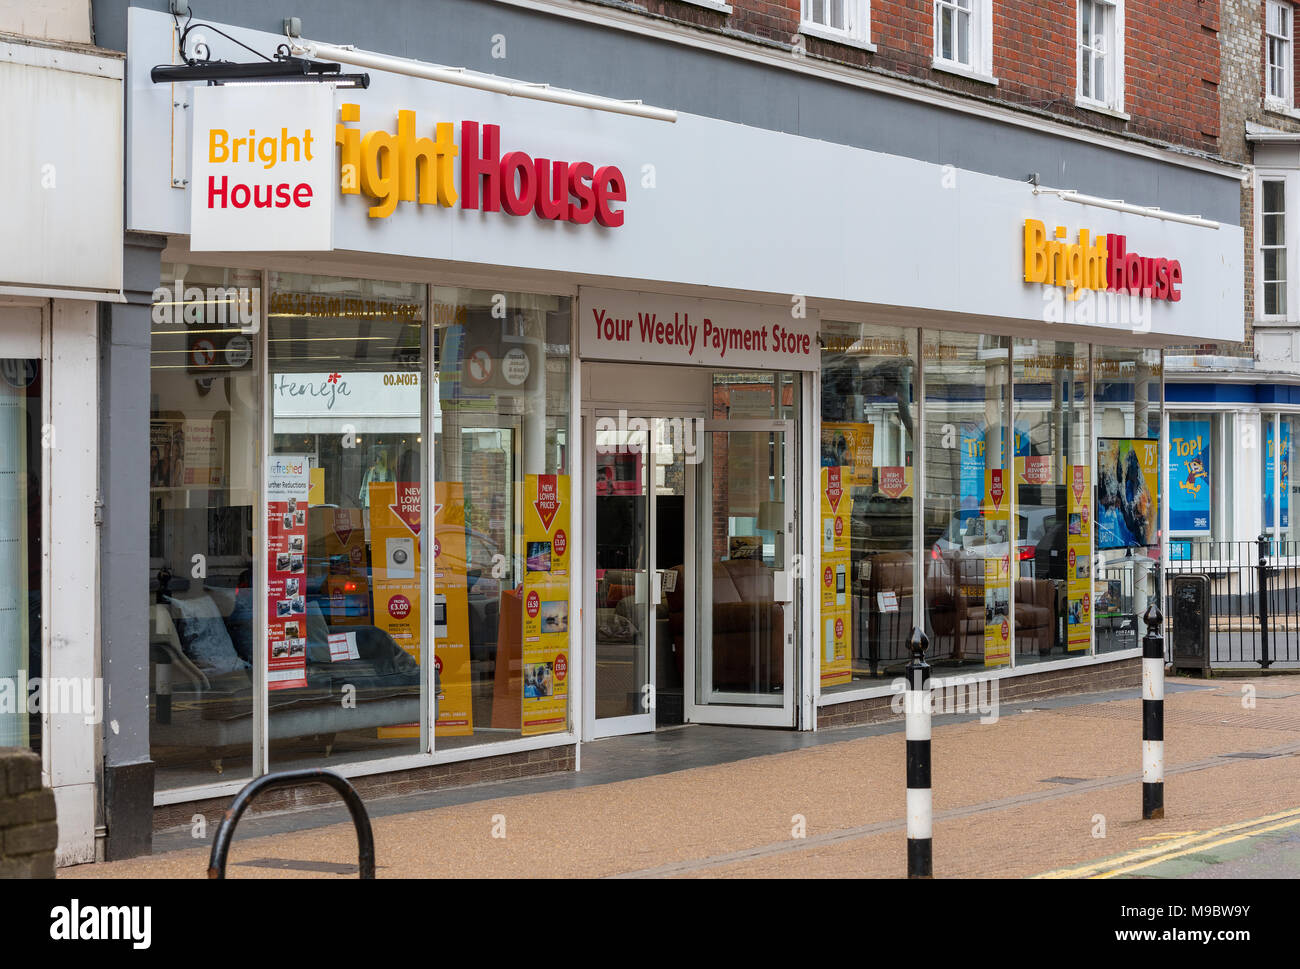 Bright house high street retailer for hire purchase on domestic appliances and white goods. High interest rates retailer in the town centre. Retailers - Stock Image